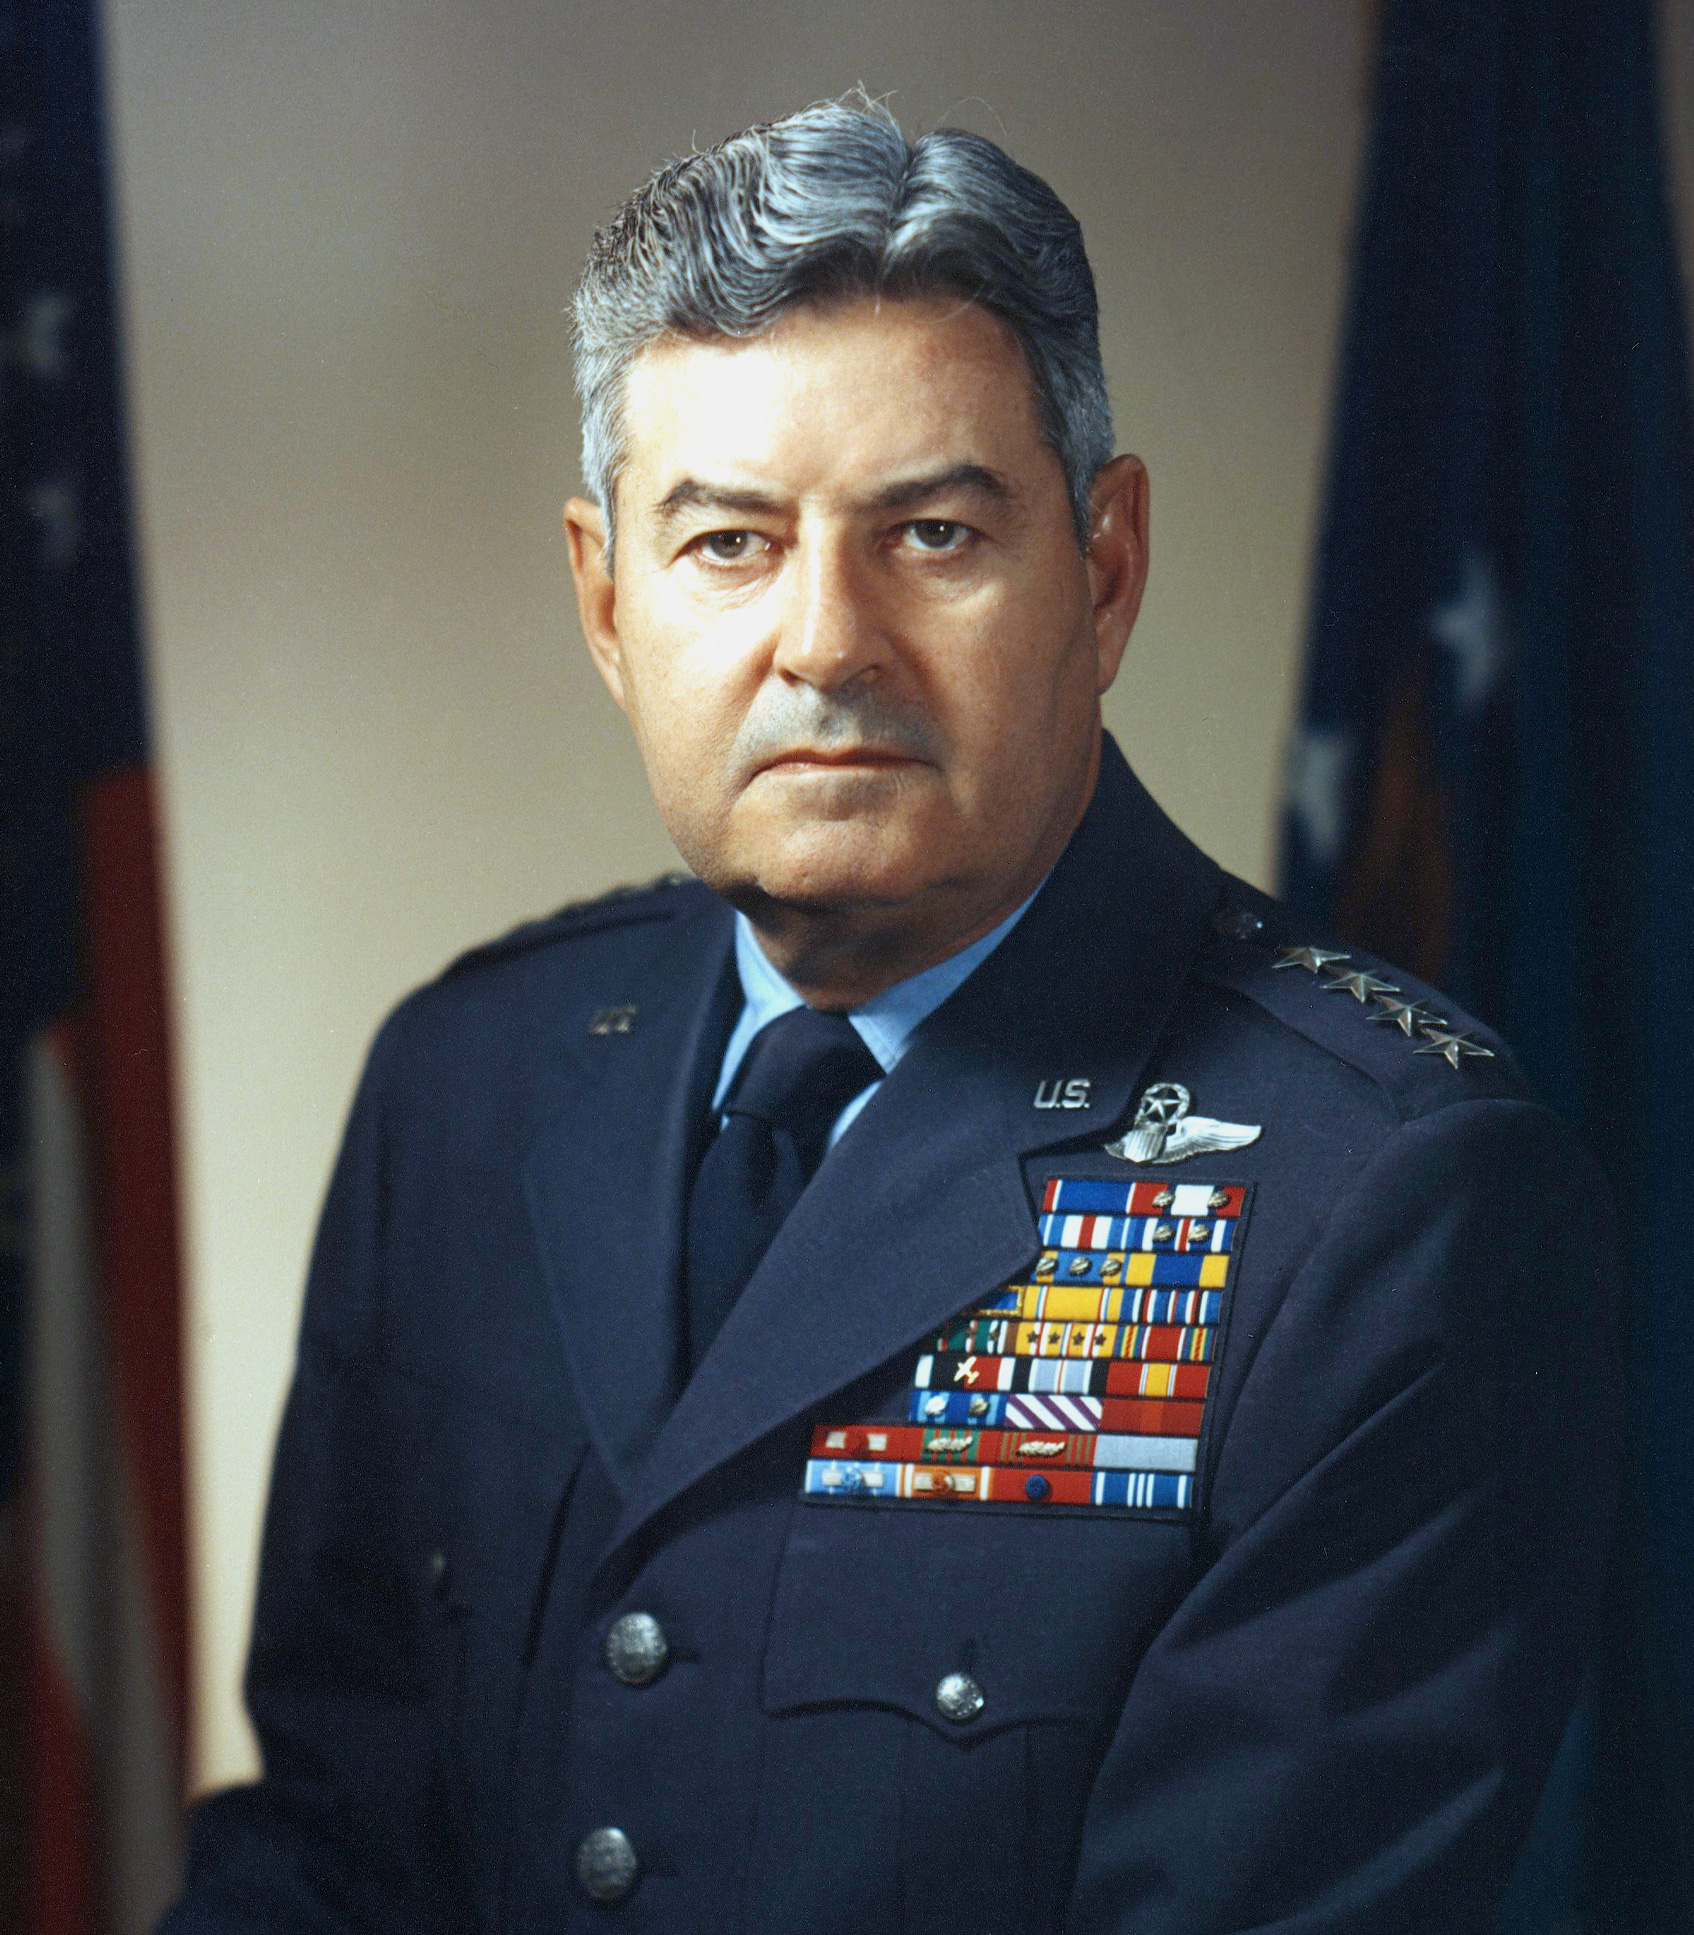 Curtis LeMay - Wikipedia